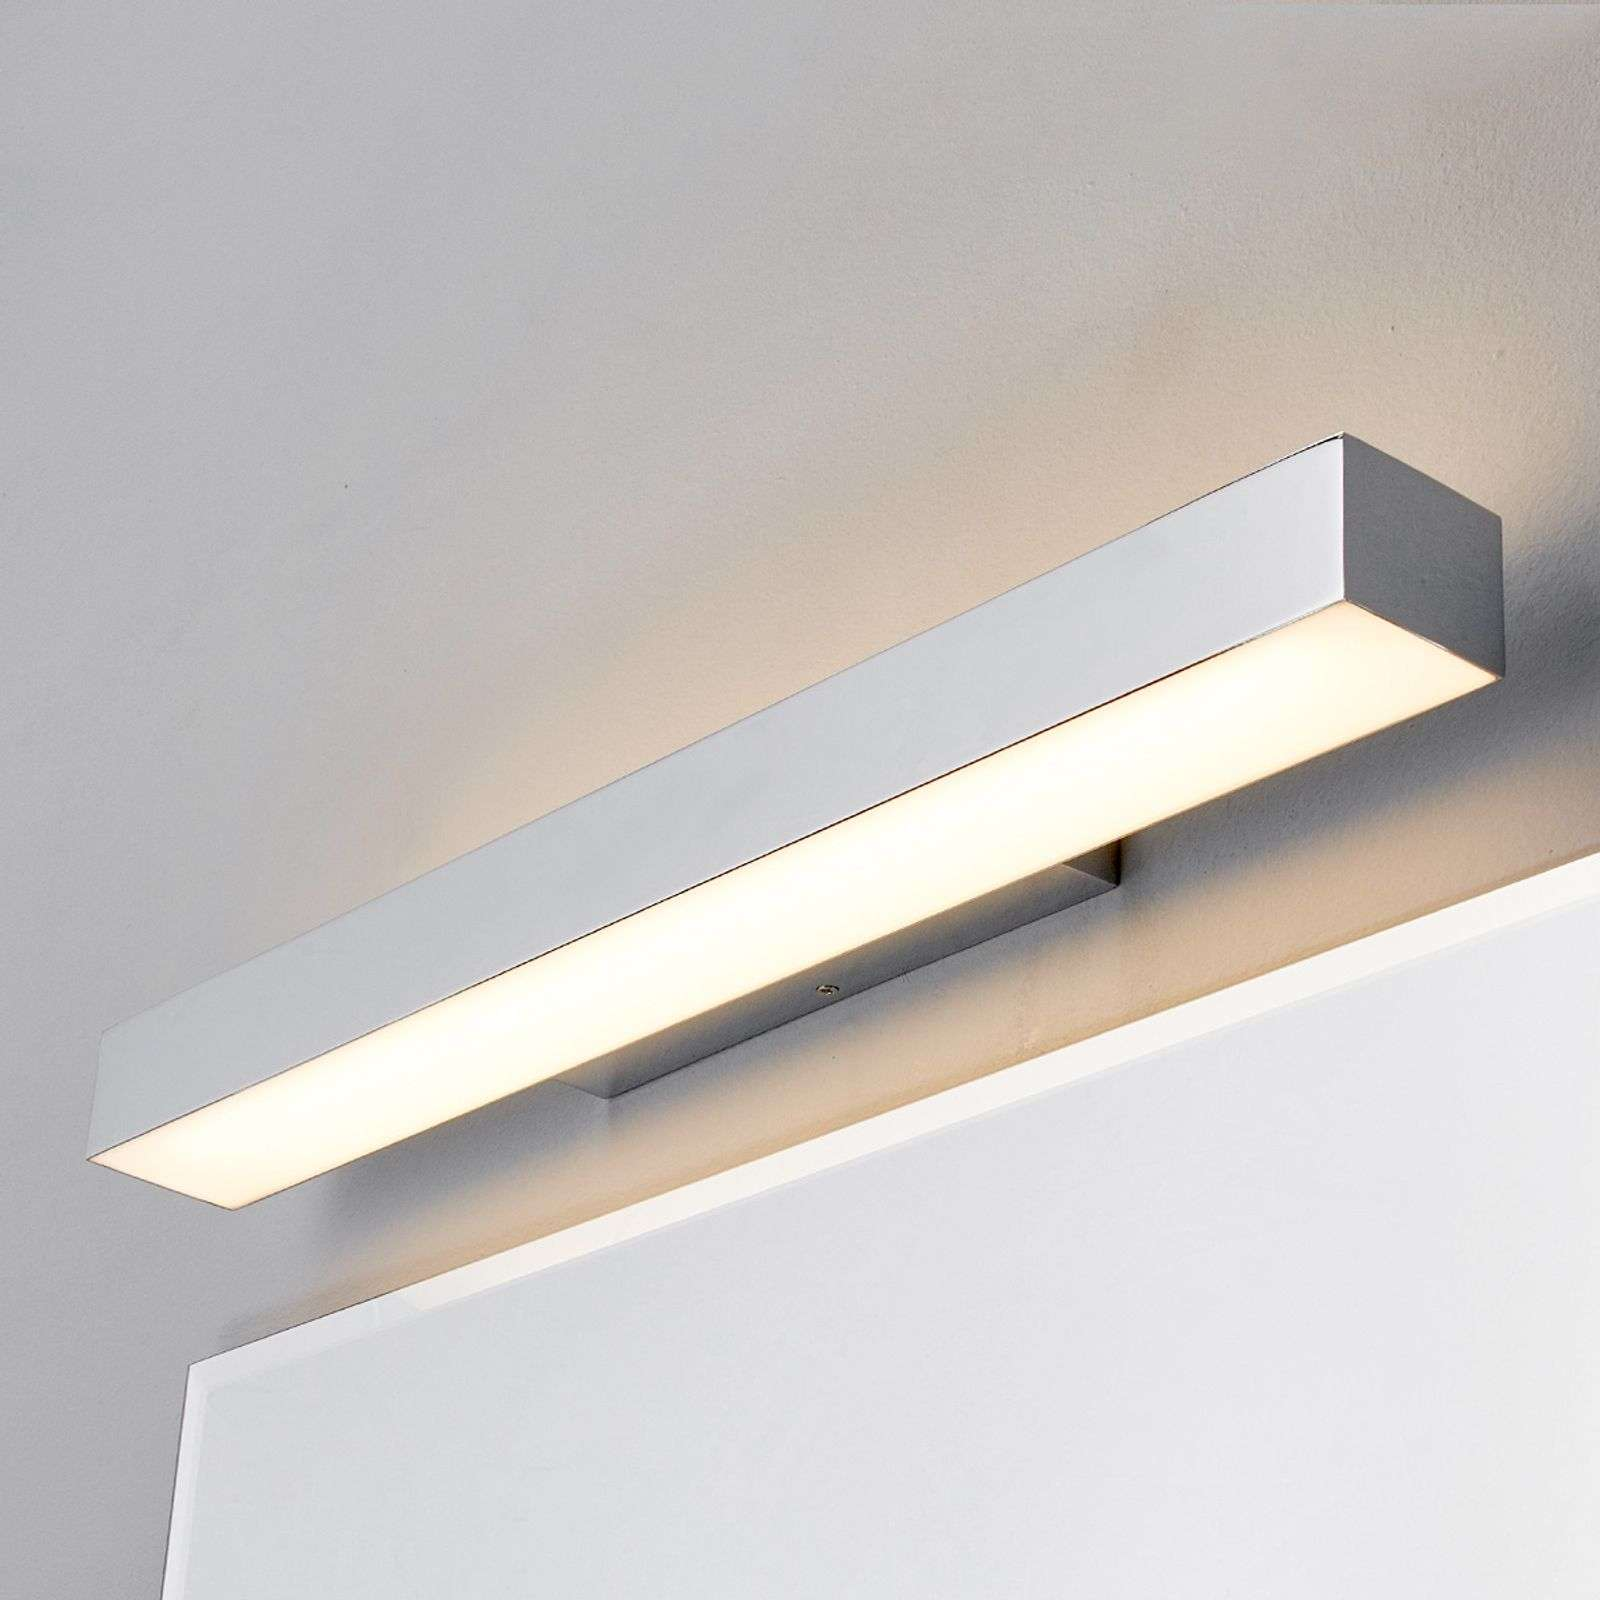 Applique per bagno con LED Kiana cromo